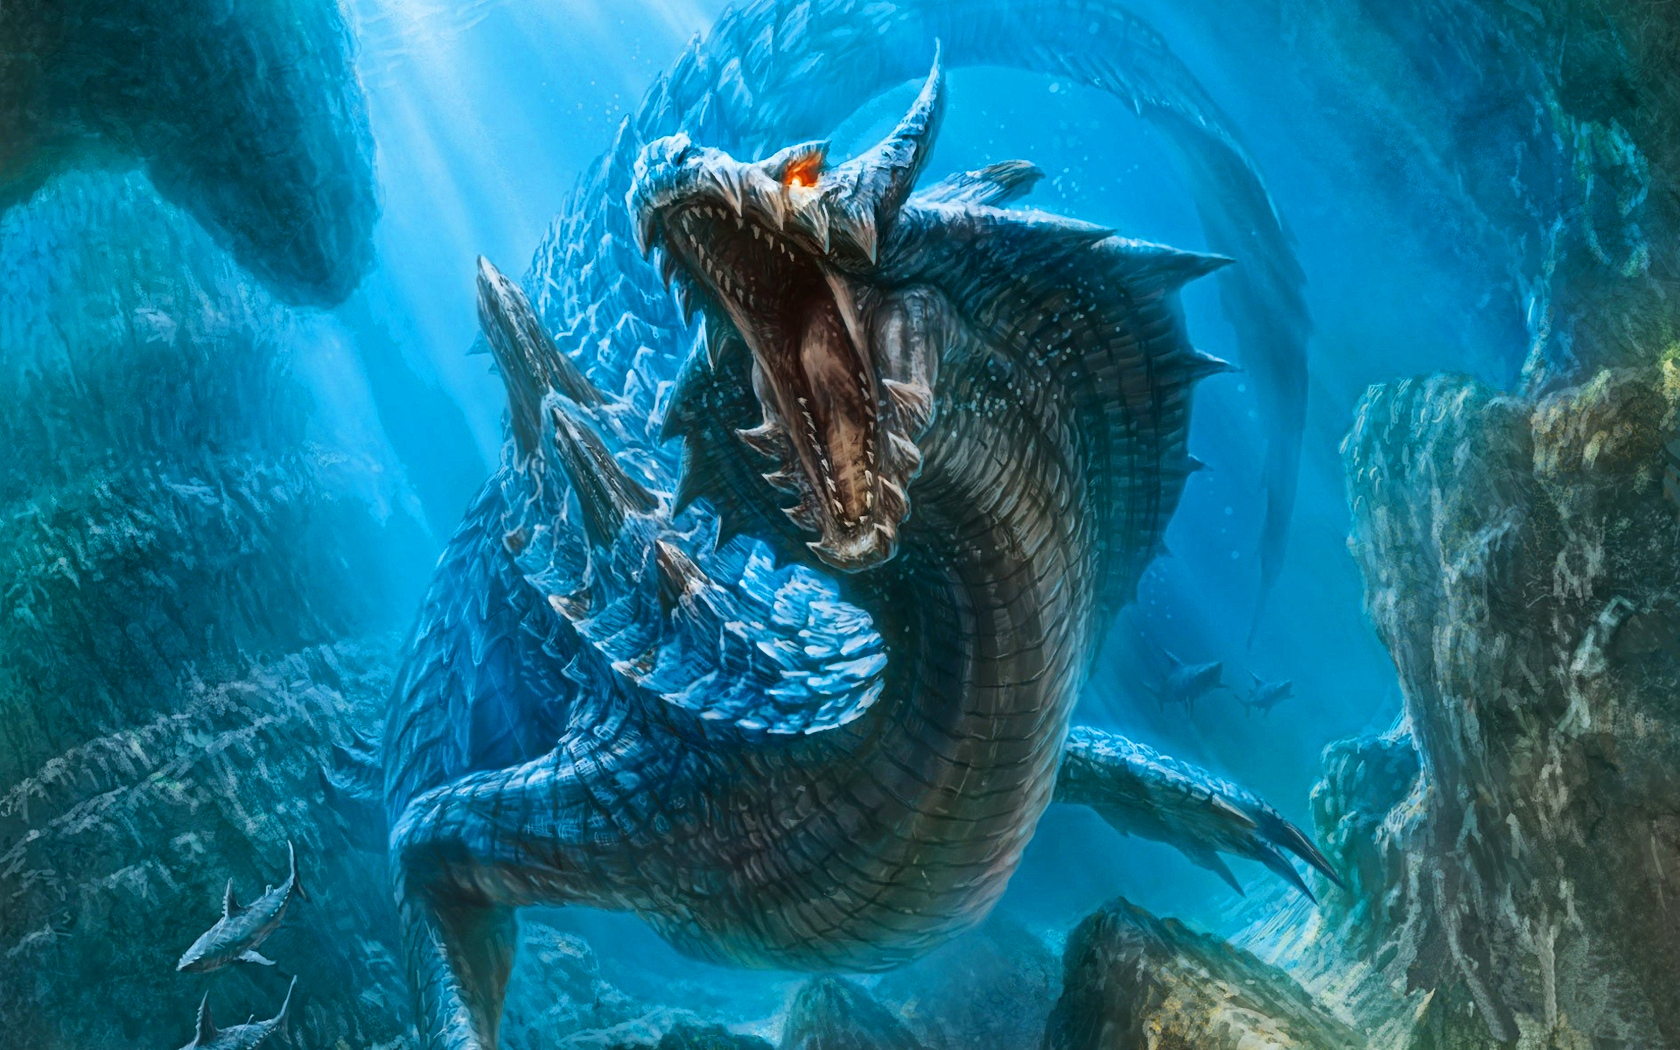 Orion the Water Dragon